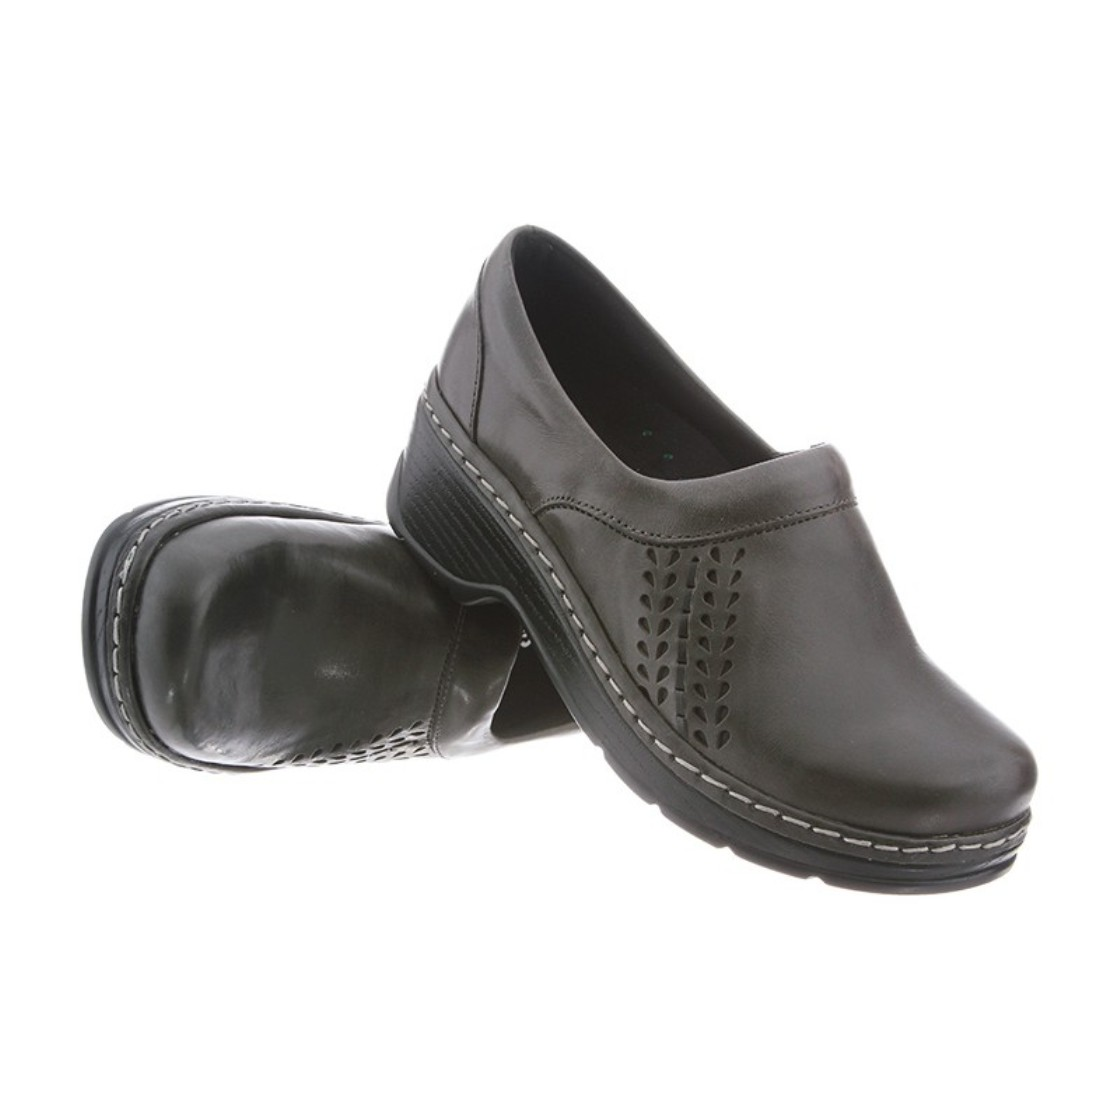 Klogs Sydney Women's Leather Supportive Clog Slate by Latitudes Inc.